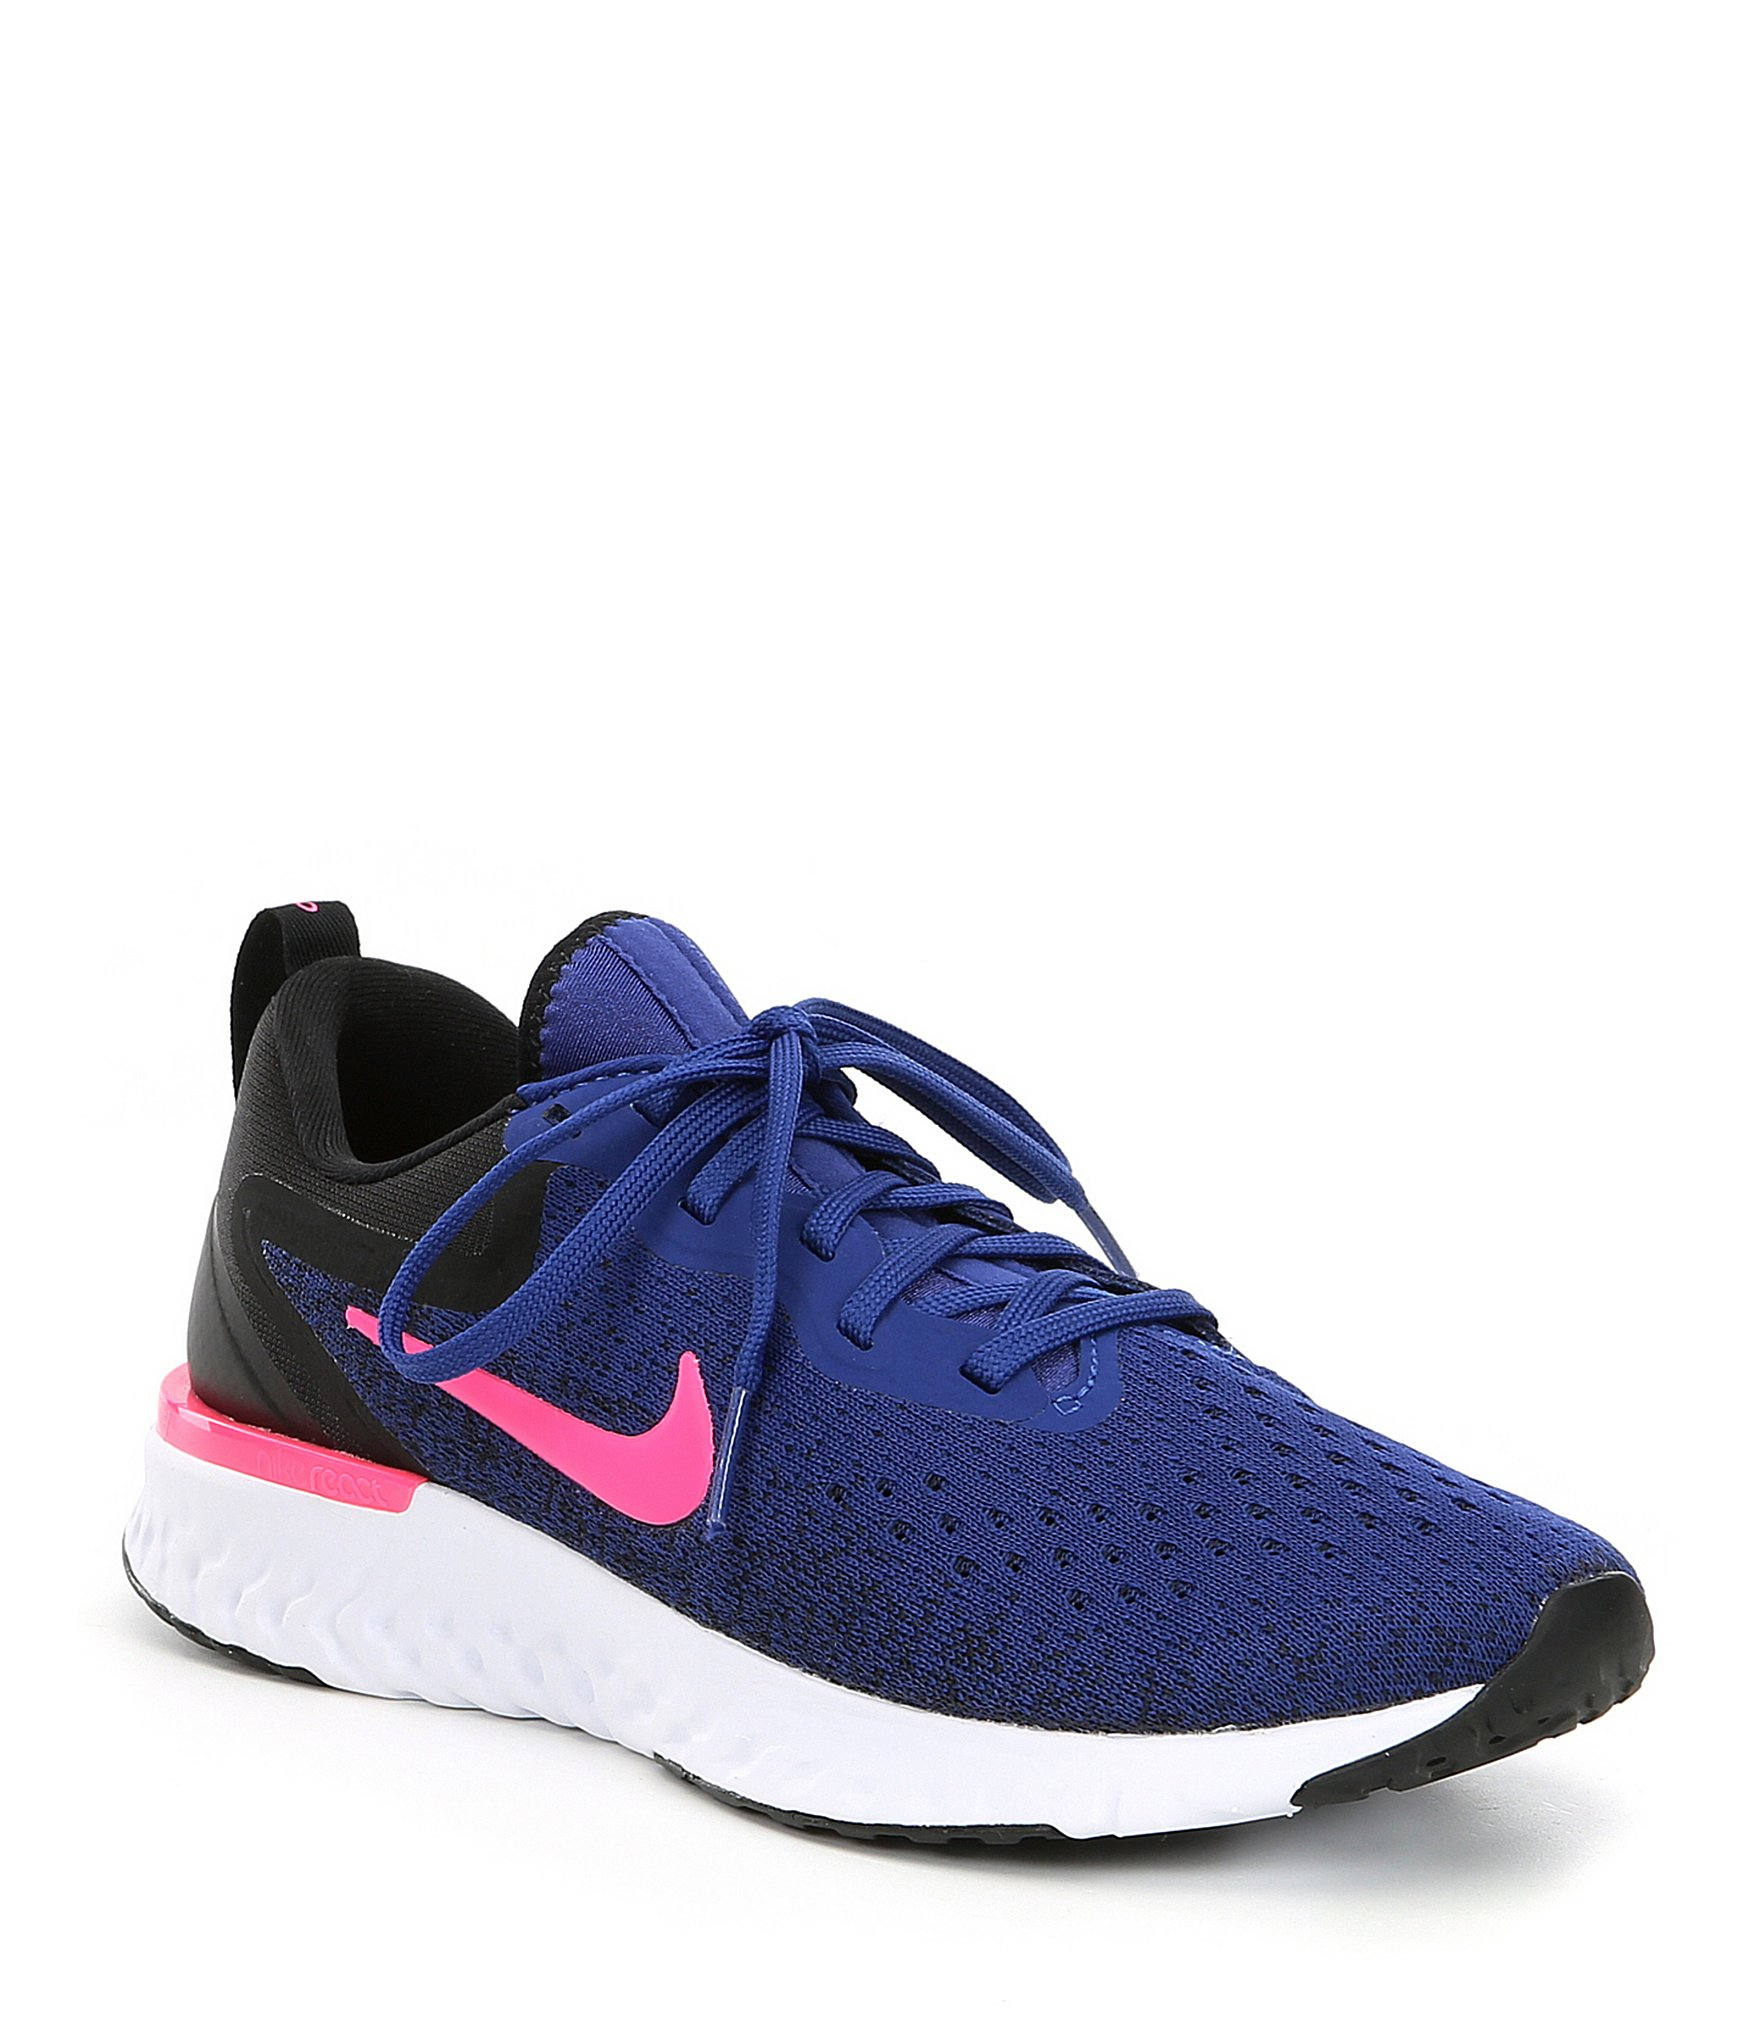 nike shoes blue